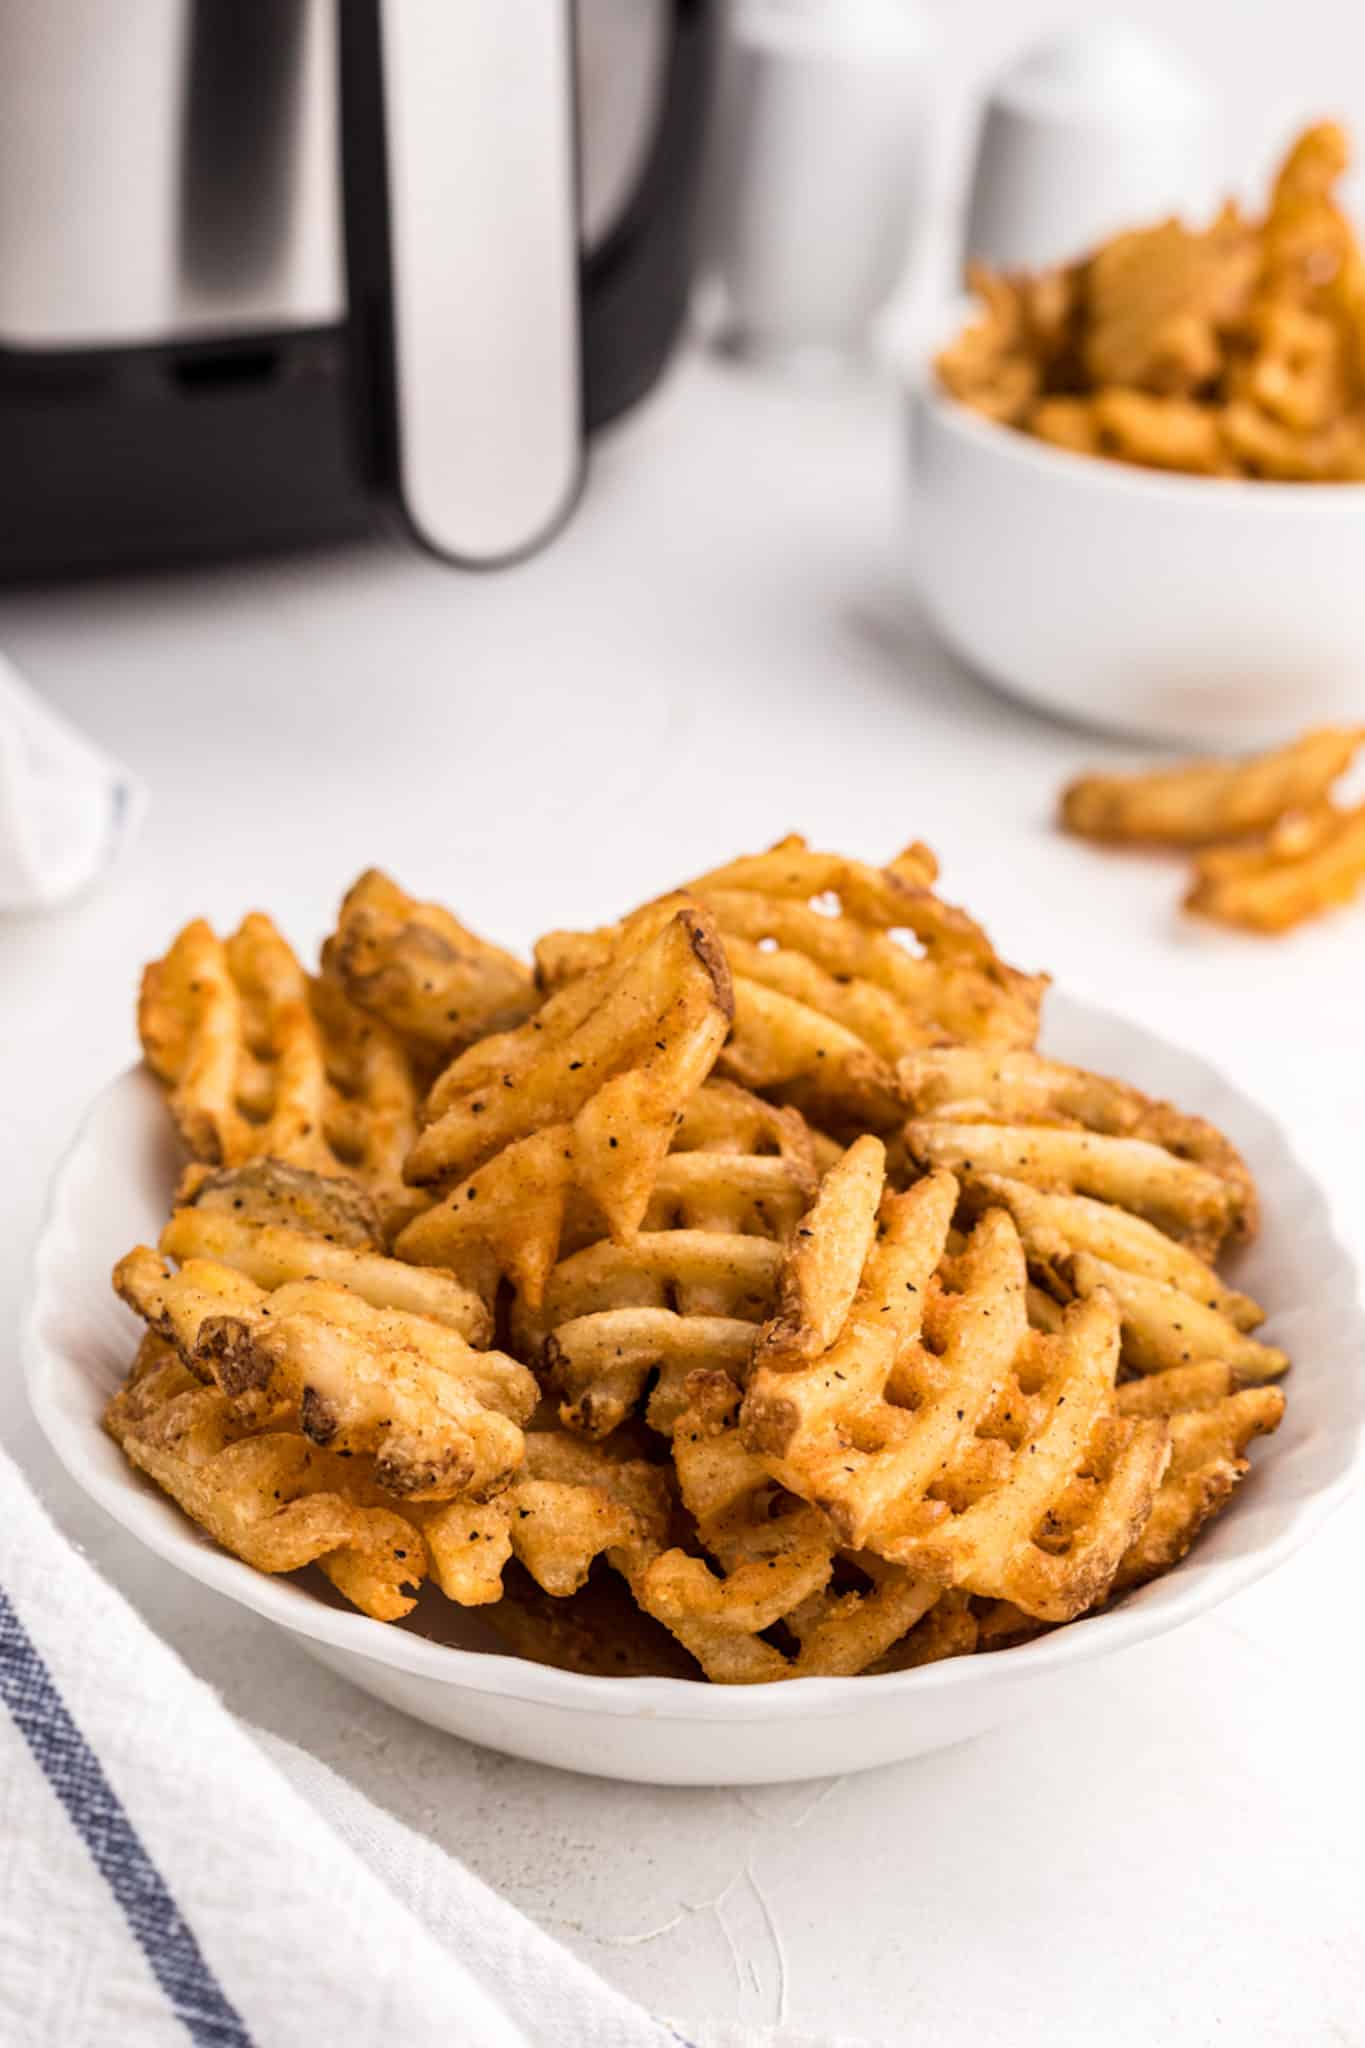 A bowl of air fried waffle fries